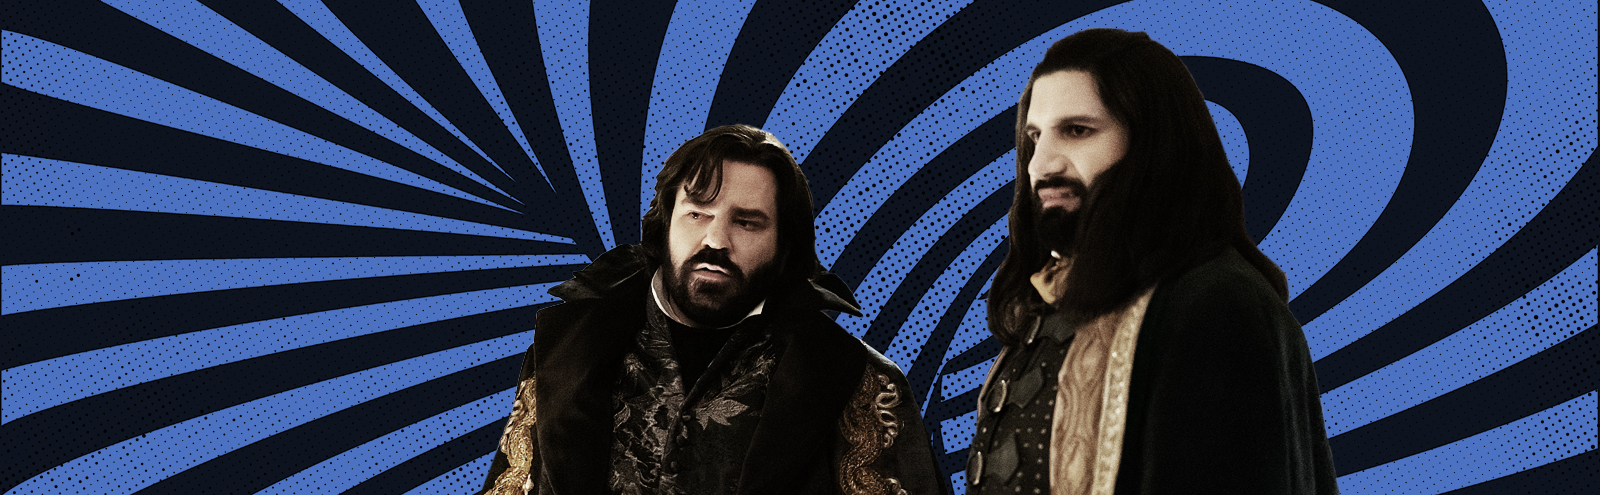 The Rundown: What We Do In The Shadows Is On A Crazy Hot Streak